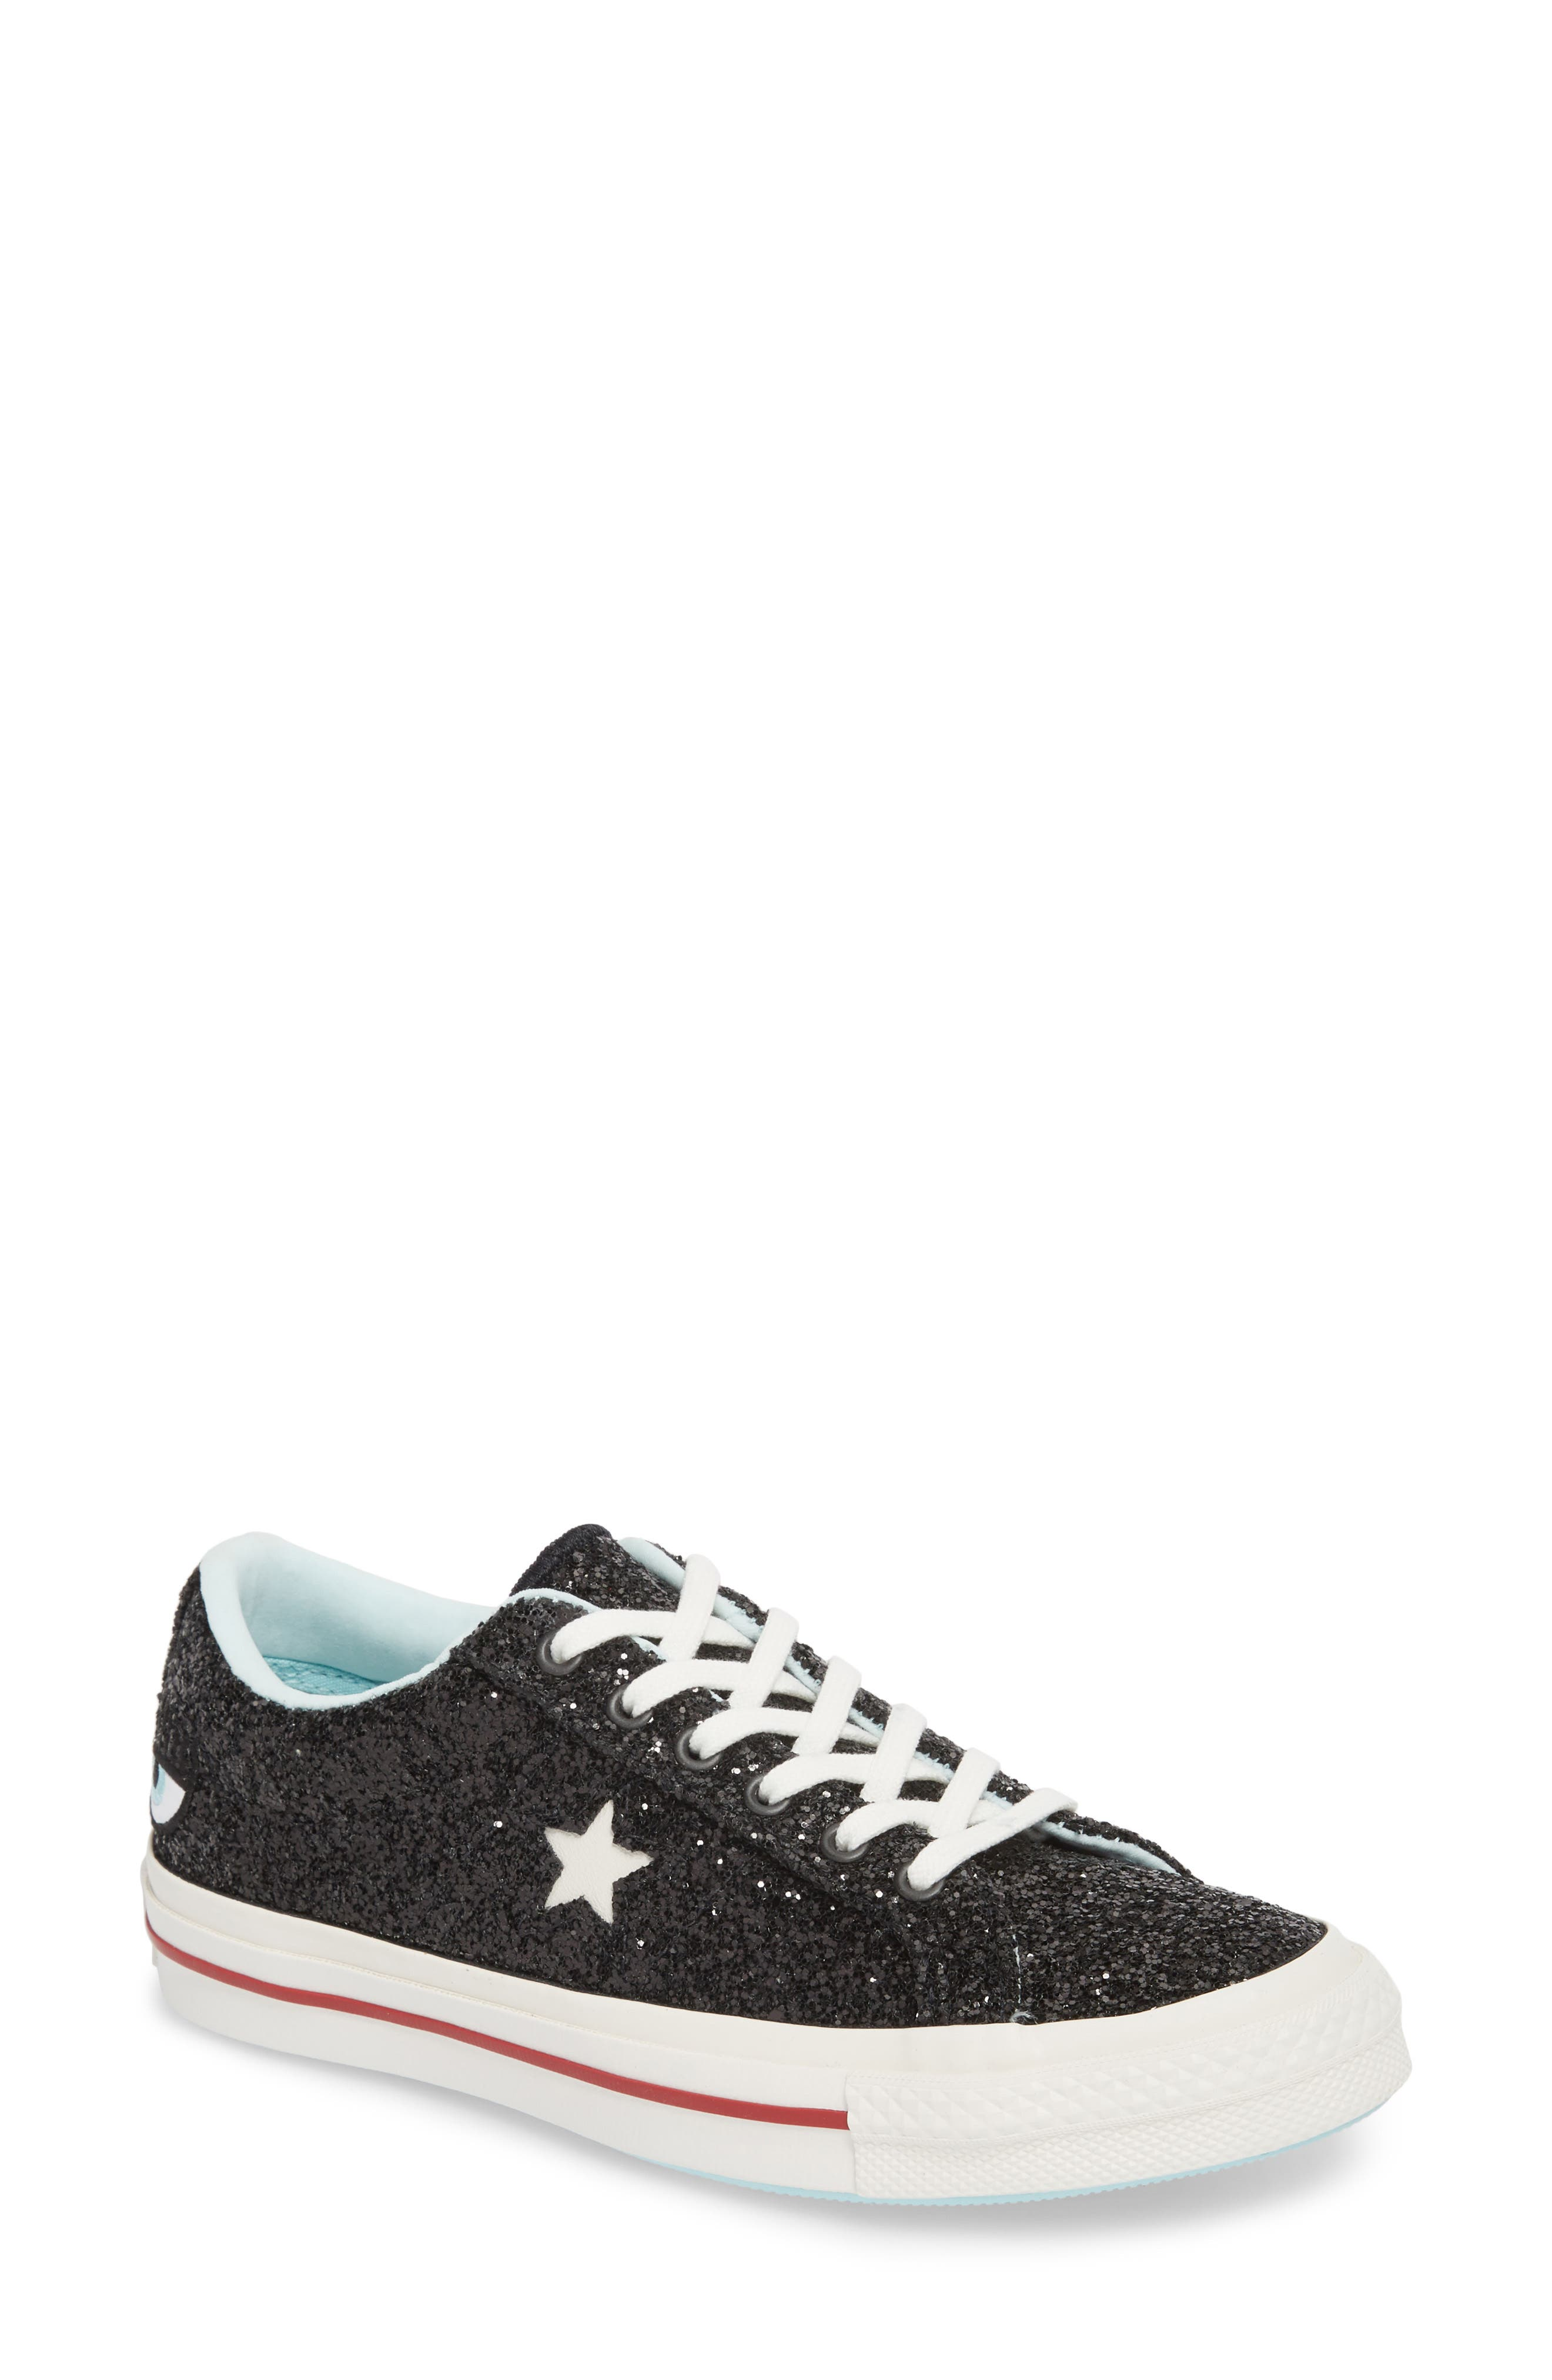 x Chiara Ferragni One Star Ox Sneaker,                         Main,                         color, 001